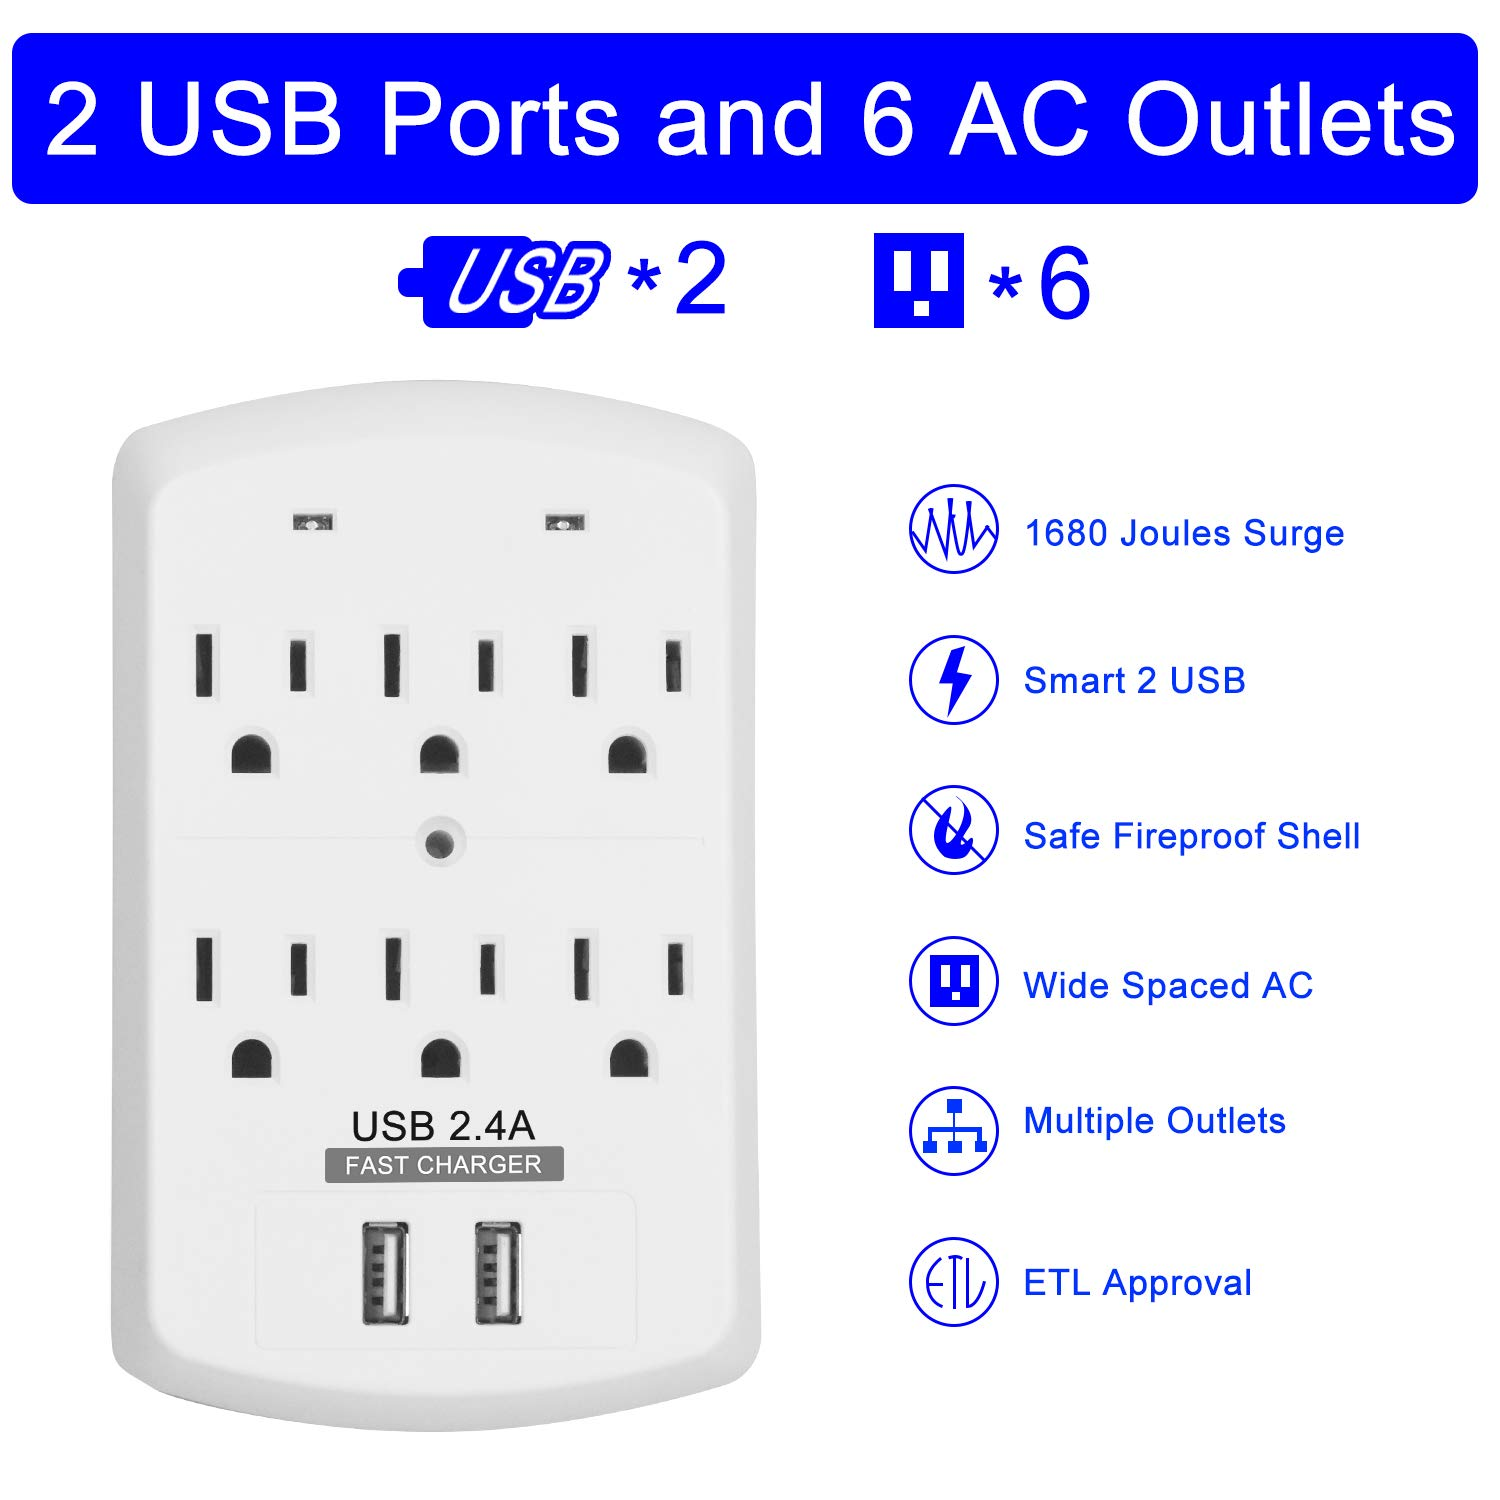 Surge Protector JIANYIJIA USB Wall Charger with Dual 2.4A USB Charging Ports Multi Plug Outlets 6 AC Socket Outlet Plugs,1680 Joules Surge Suppression-White